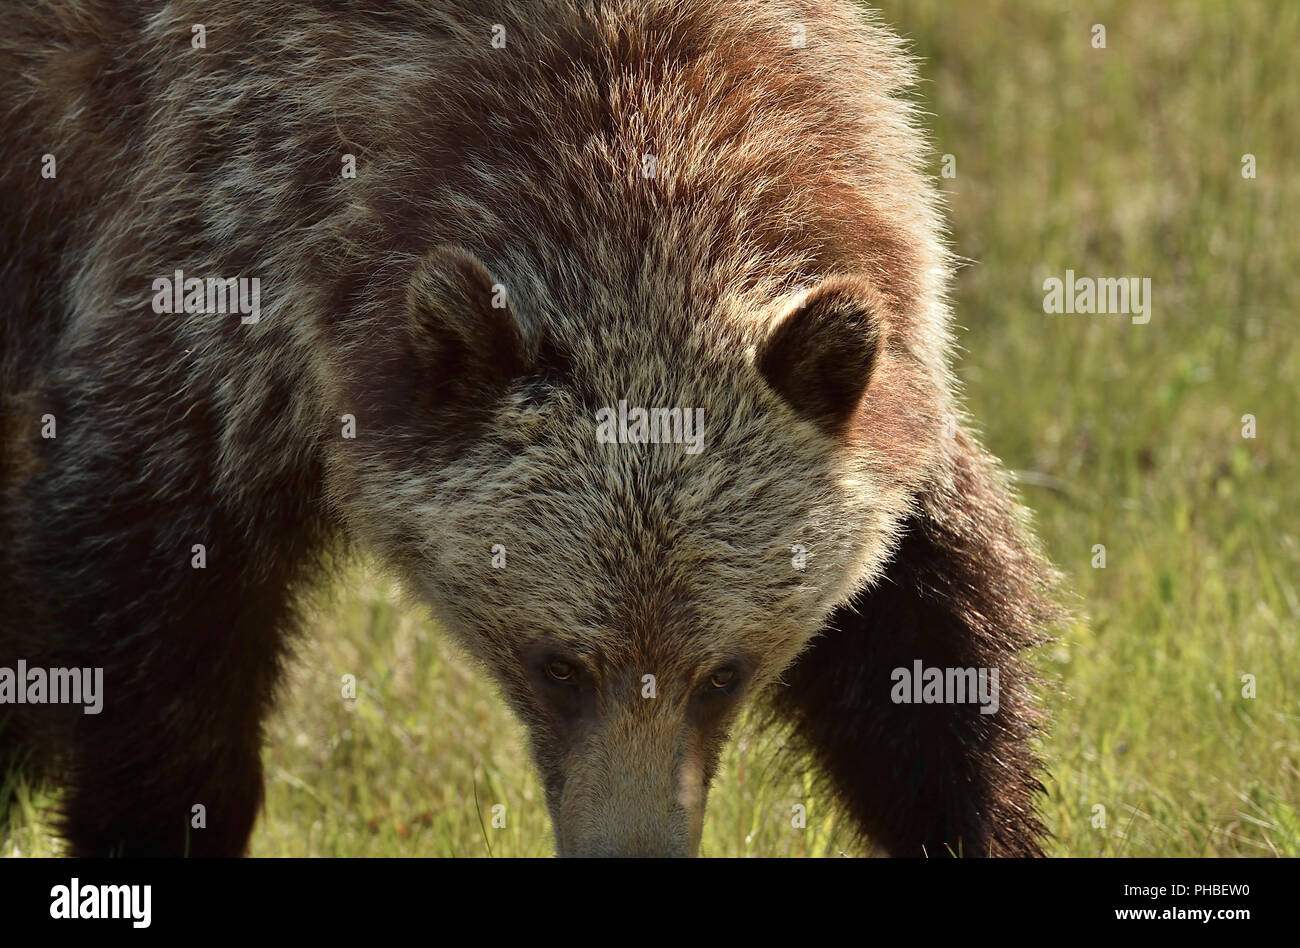 A close up image of a grizzly bear  (Ursus arctos); walking forward with his head down in an intimidating manner - Stock Image